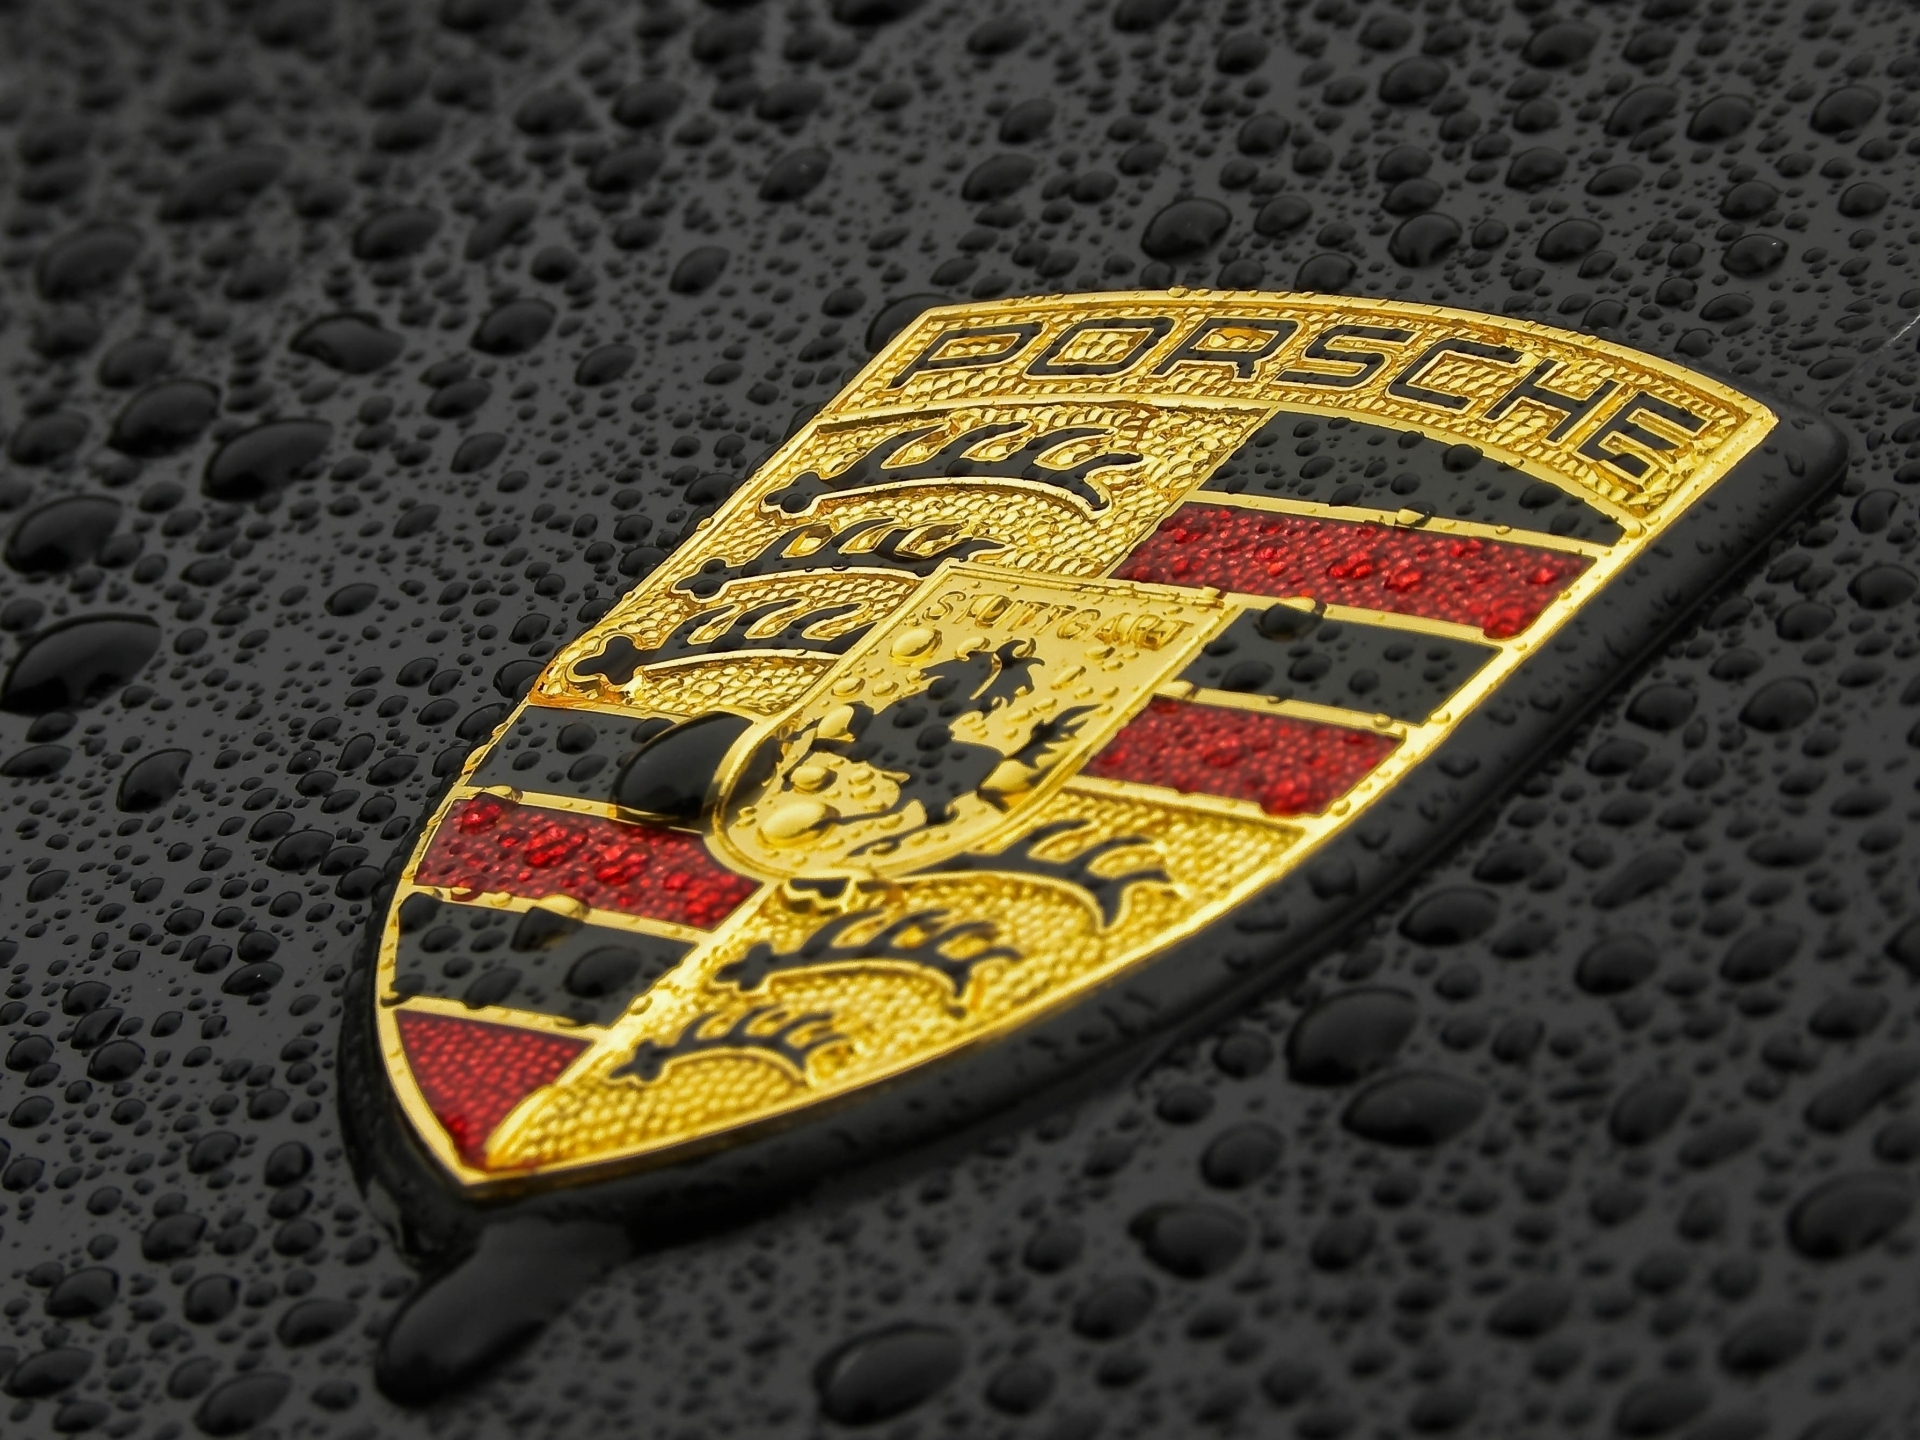 porsche logo wallpaper 1920x1440